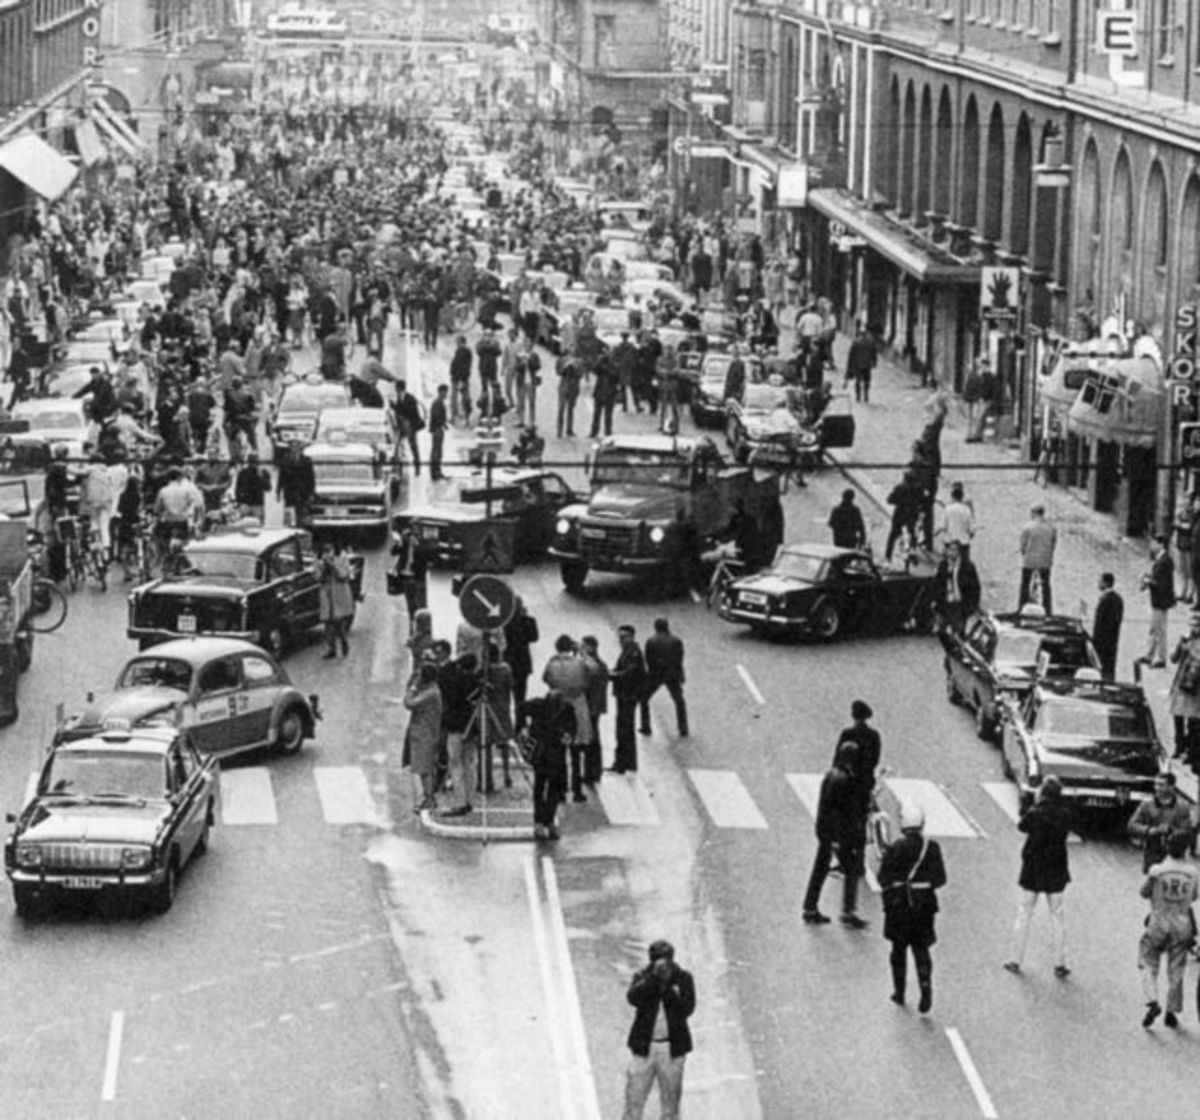 Chaos in Stockholm as the country switches from driving on the left to the right in 1967.